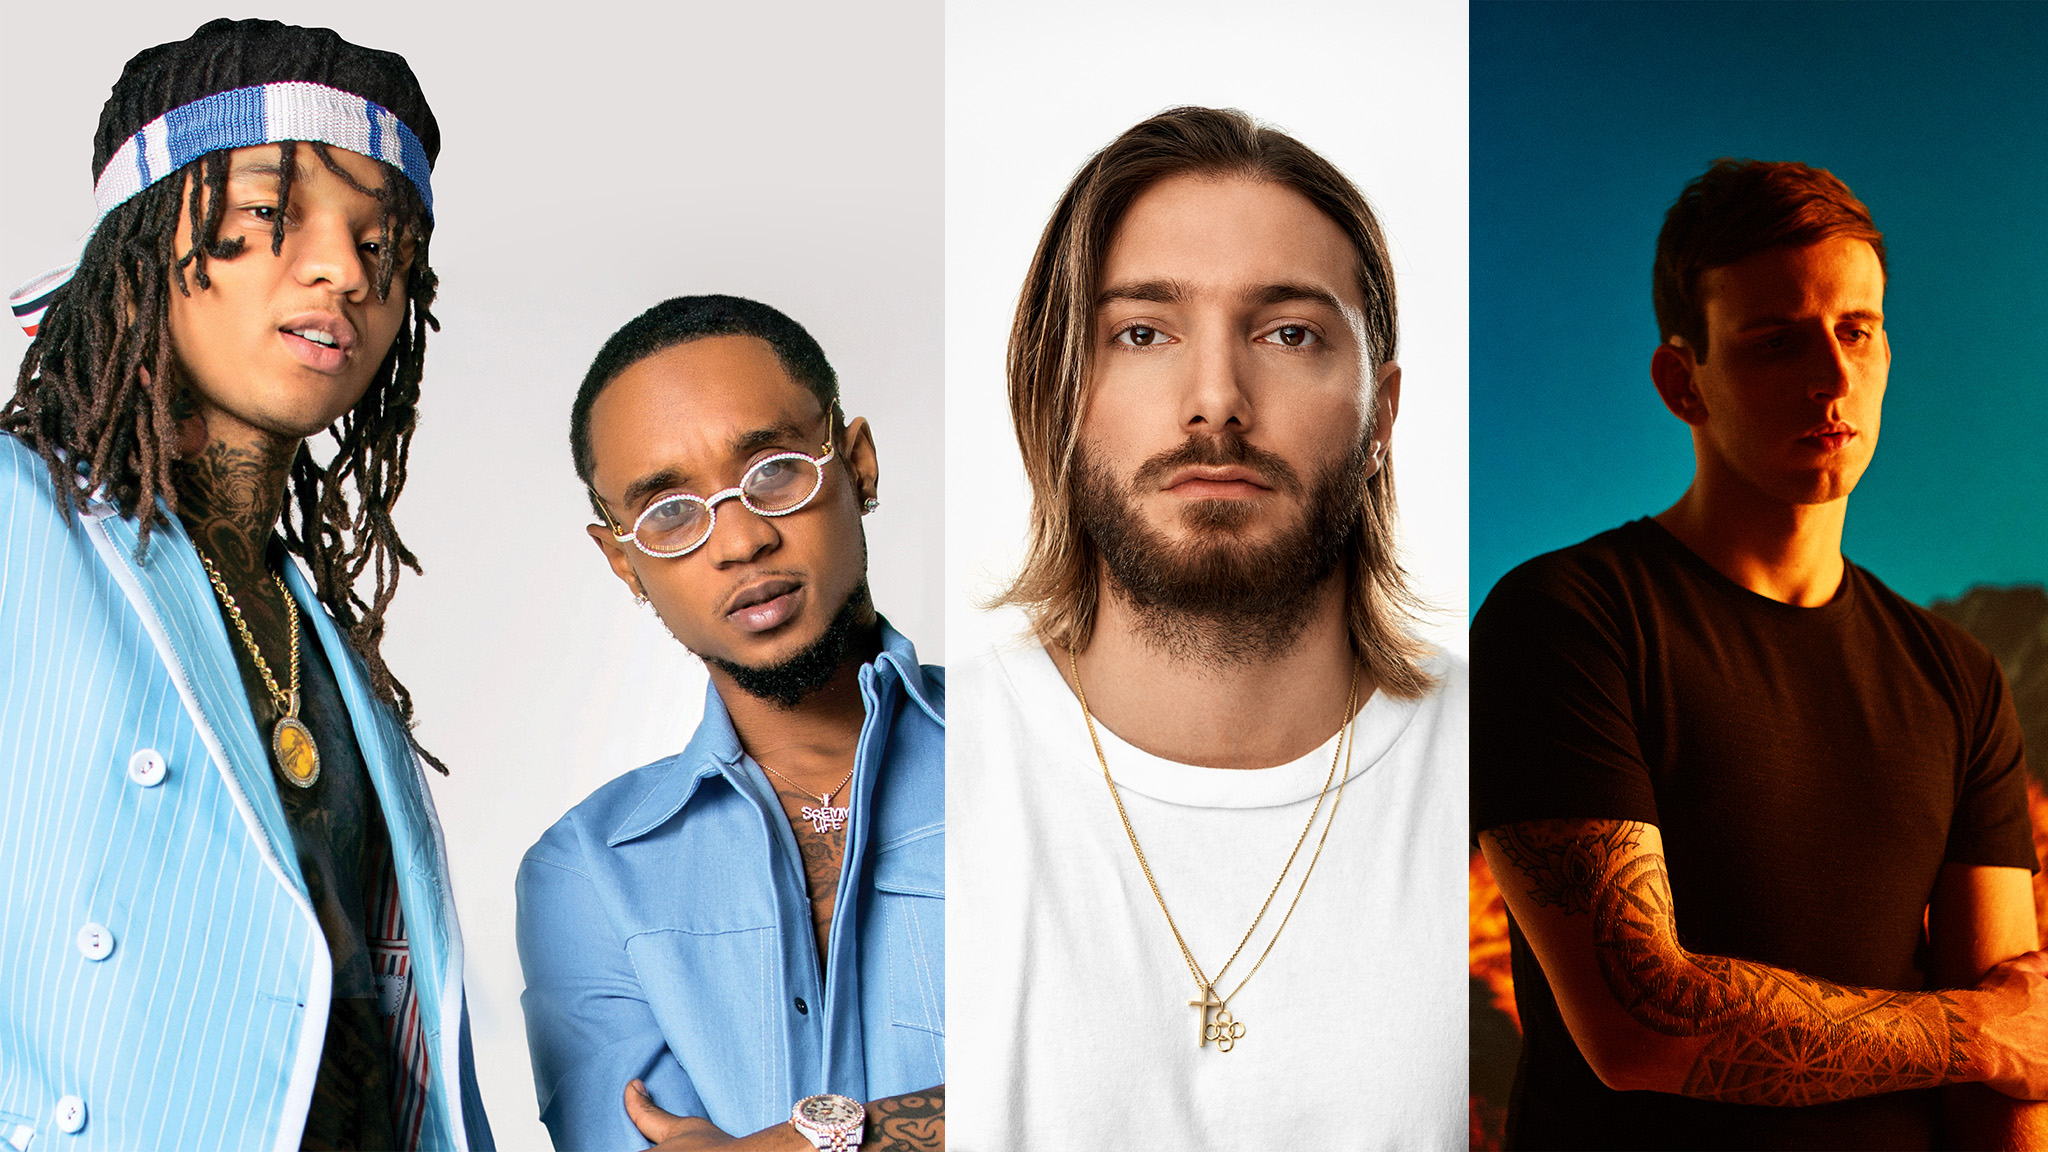 X Games returns to Aspen for 2020 on Jan. 23 - 26, featuring live music acts (left to right) Rae Sremmurd, Alesso and Illenium, plus Bazzi (not pictured).